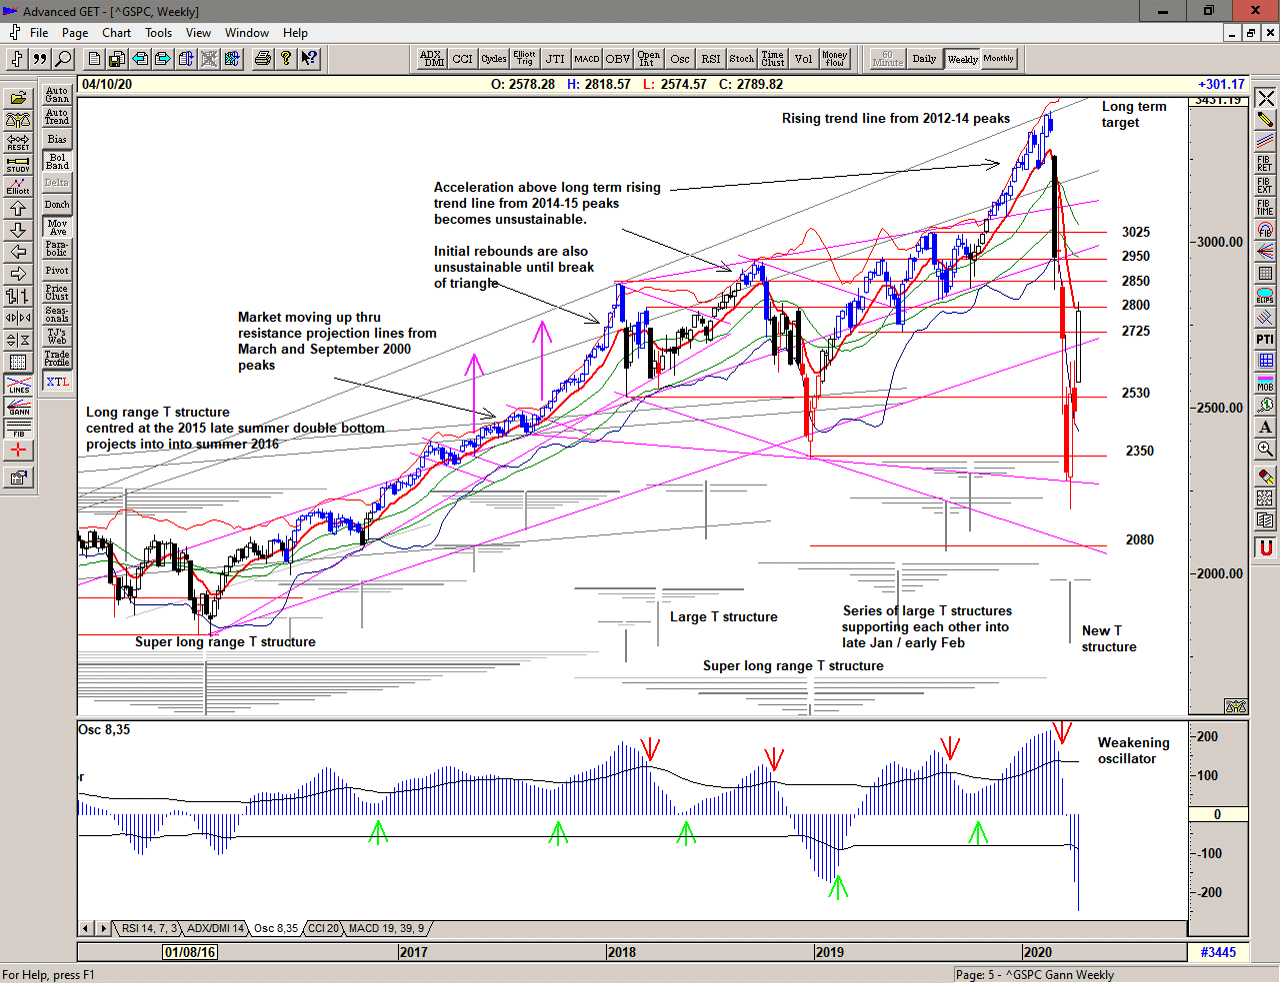 Weekly Chart of S&P 500 for 13 April 2020